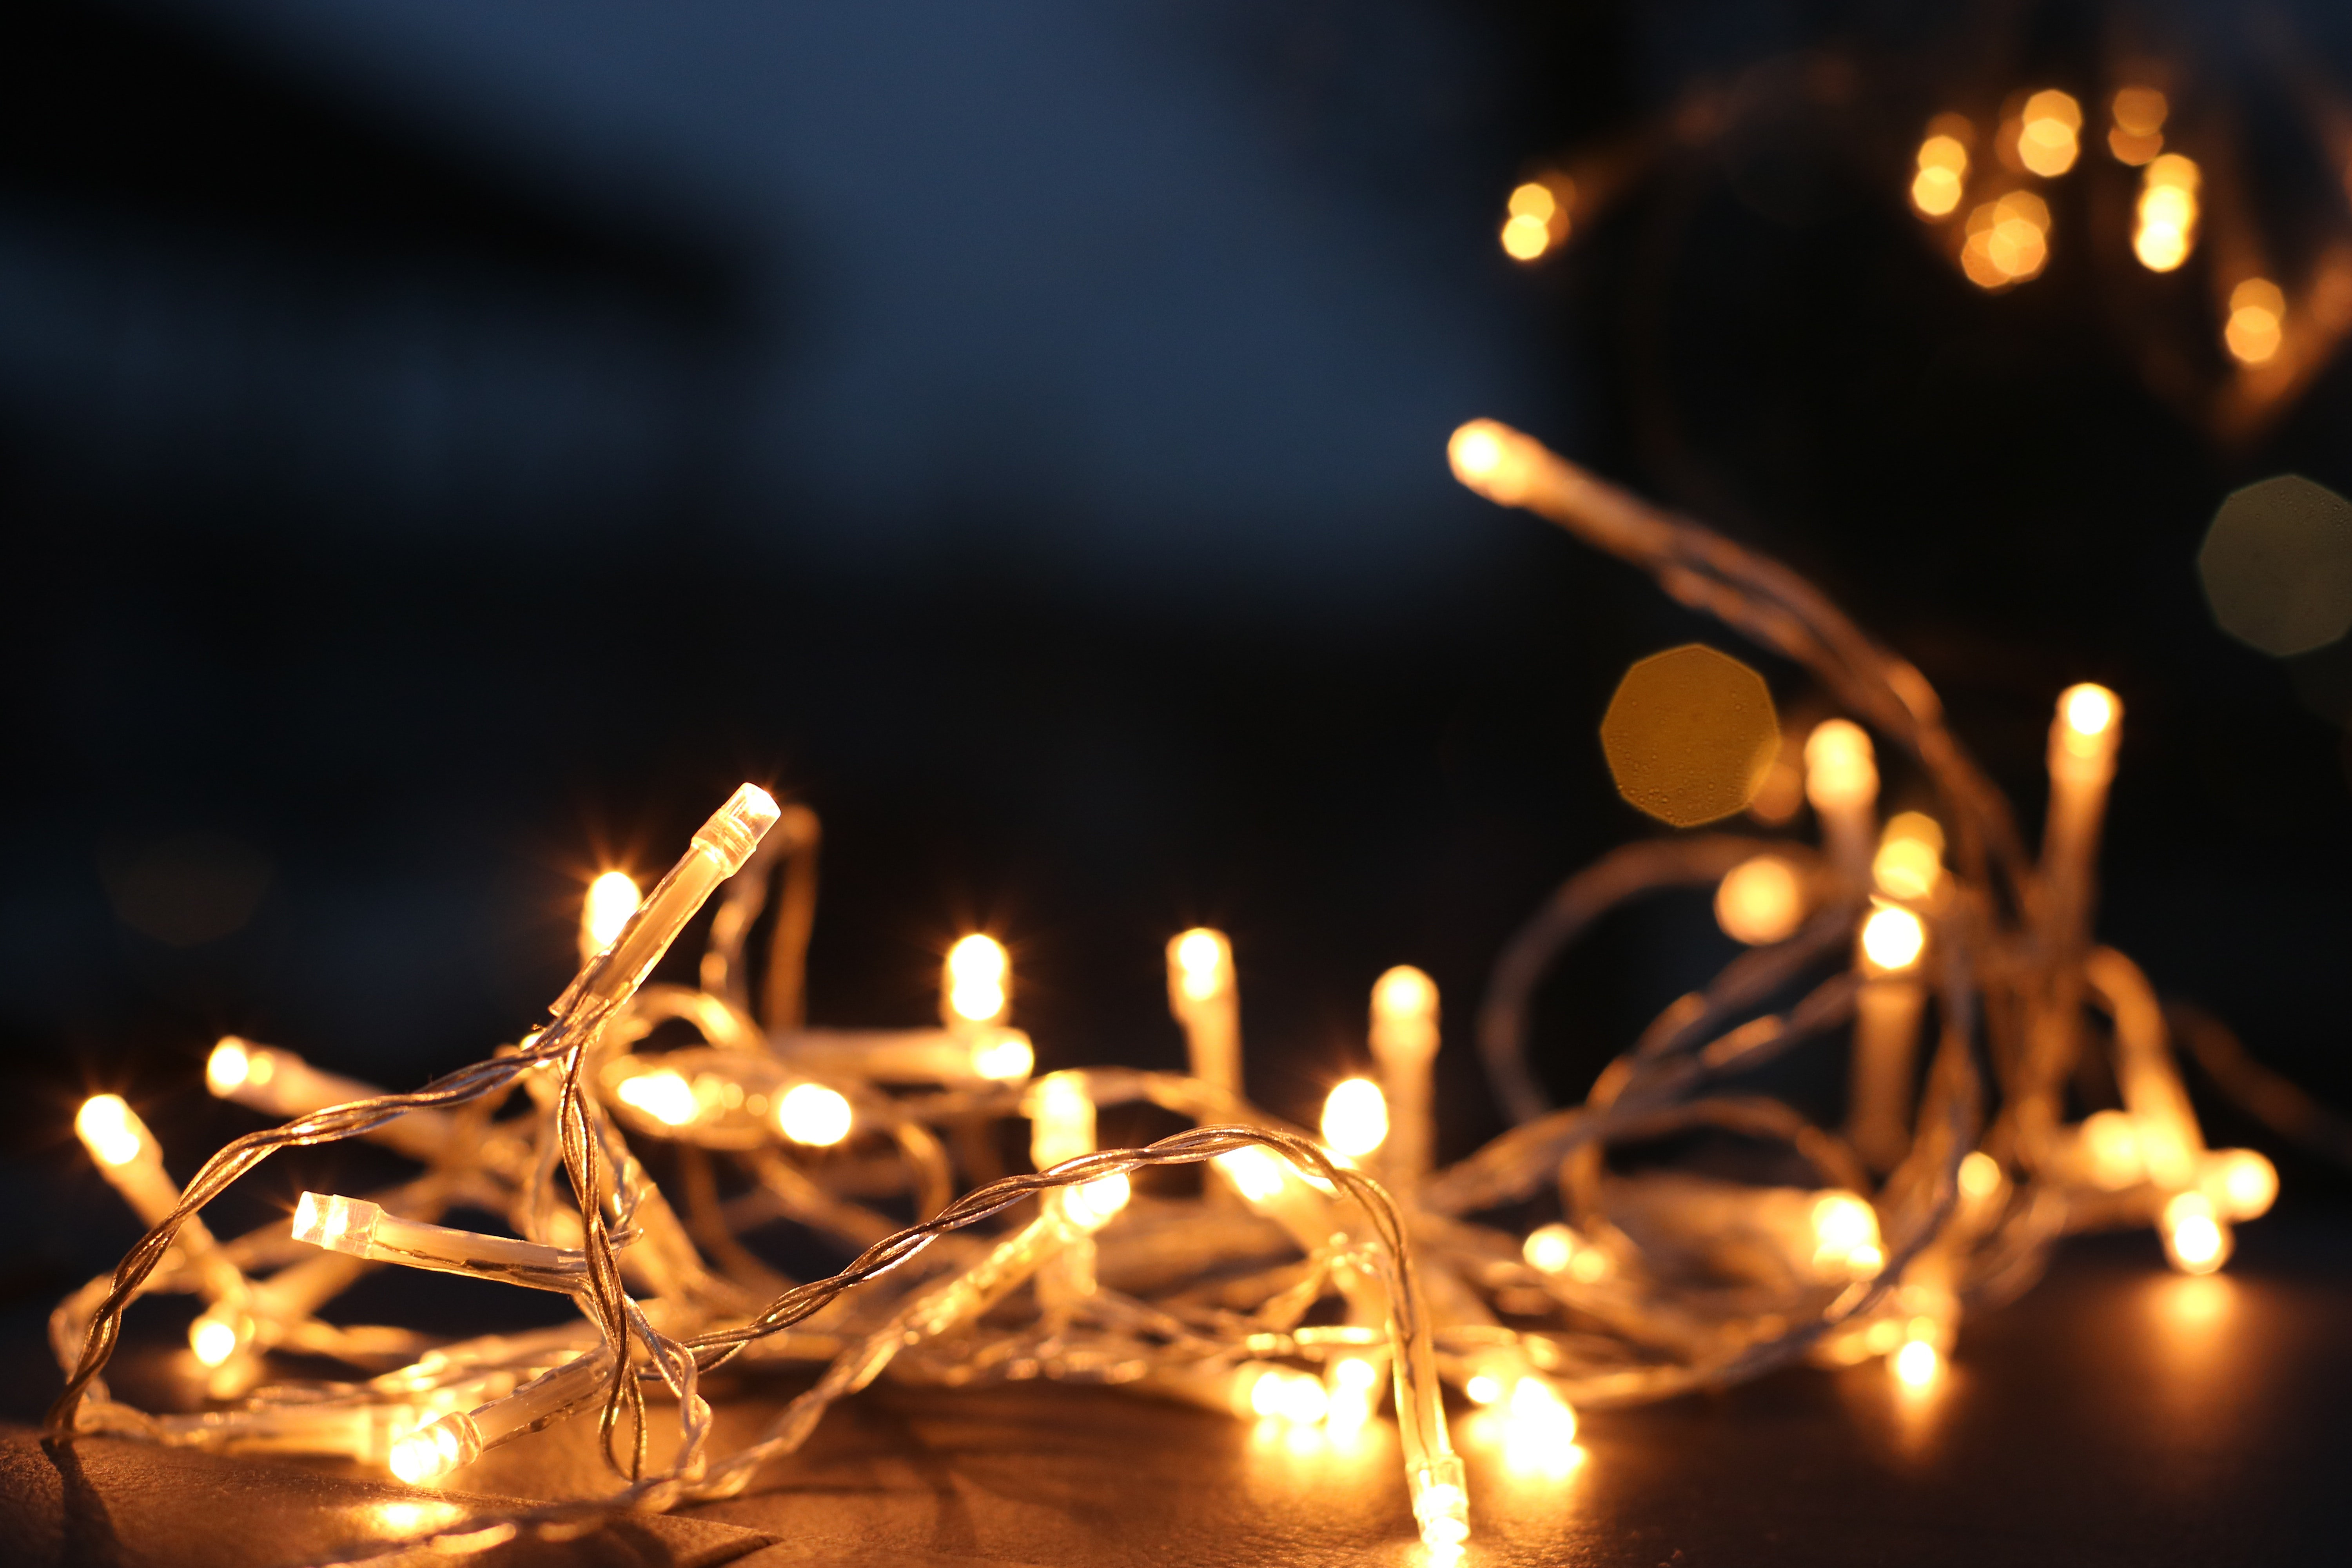 1000+ Beautiful Christmas Lights Photos · Pexels · Free Stock Photos